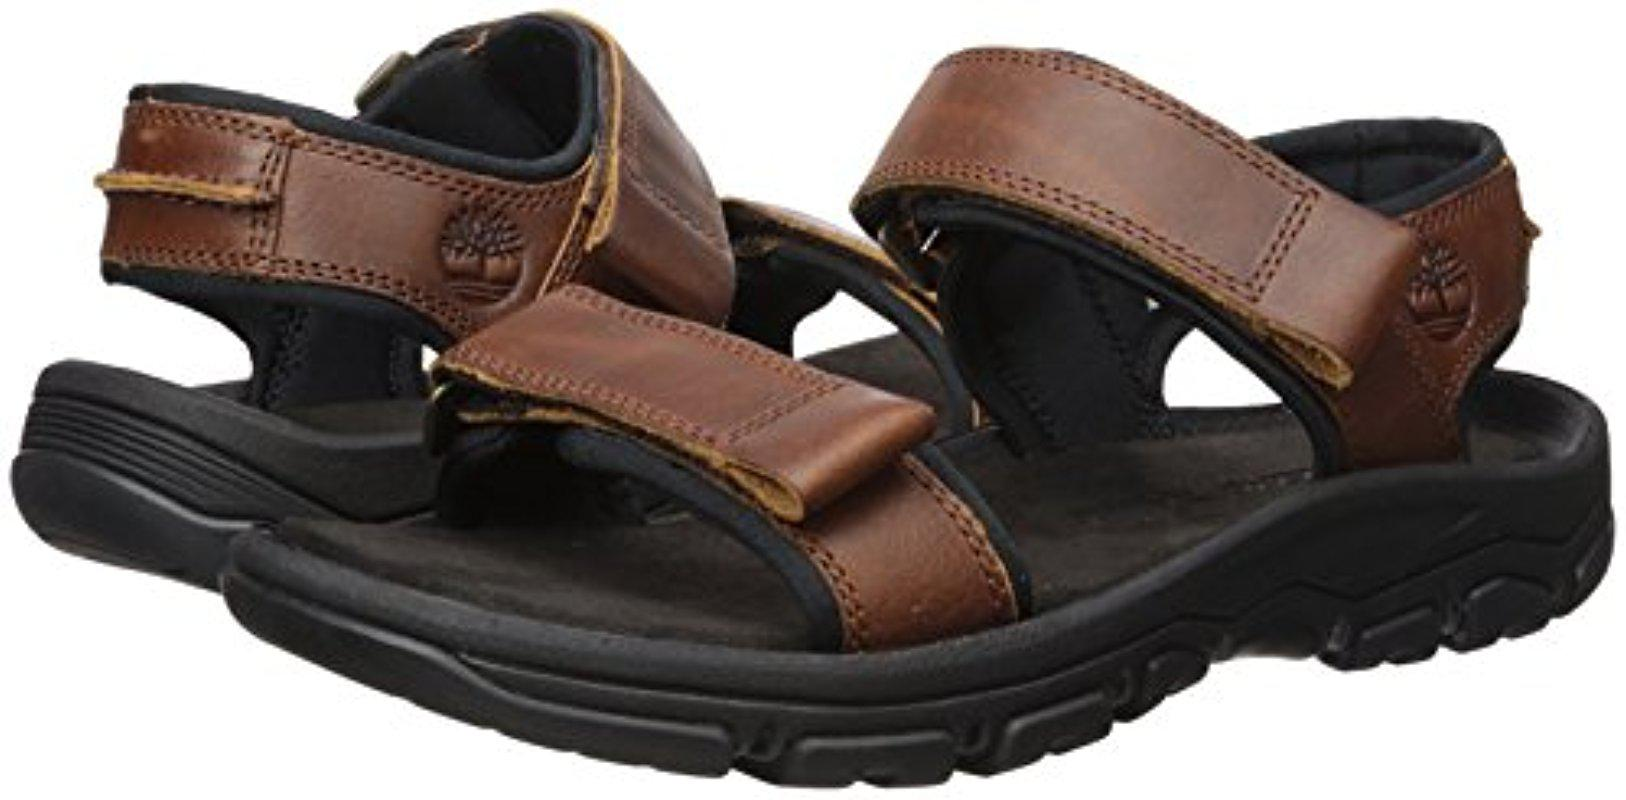 5481b478cc37 Lyst - Timberland Roslindale 2-strap Sandal in Brown for Men - Save 21%